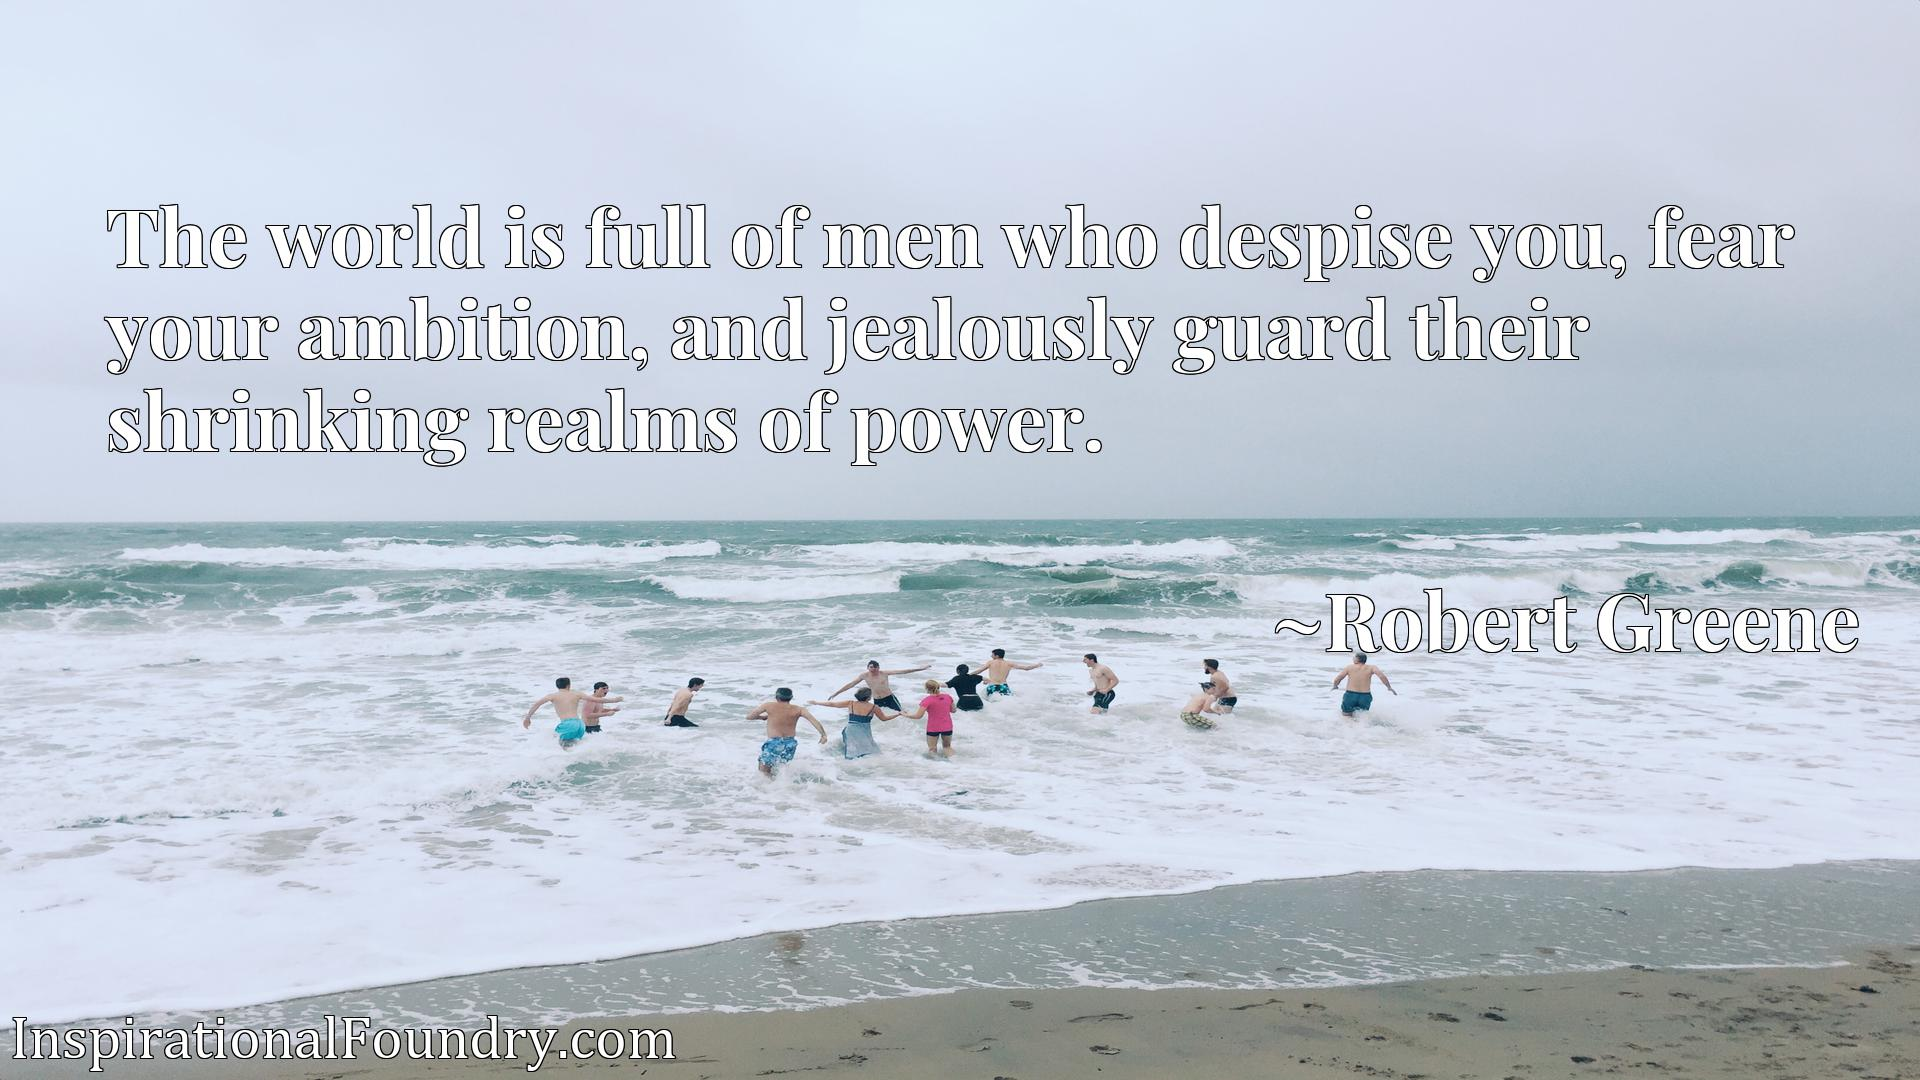 The world is full of men who despise you, fear your ambition, and jealously guard their shrinking realms of power.